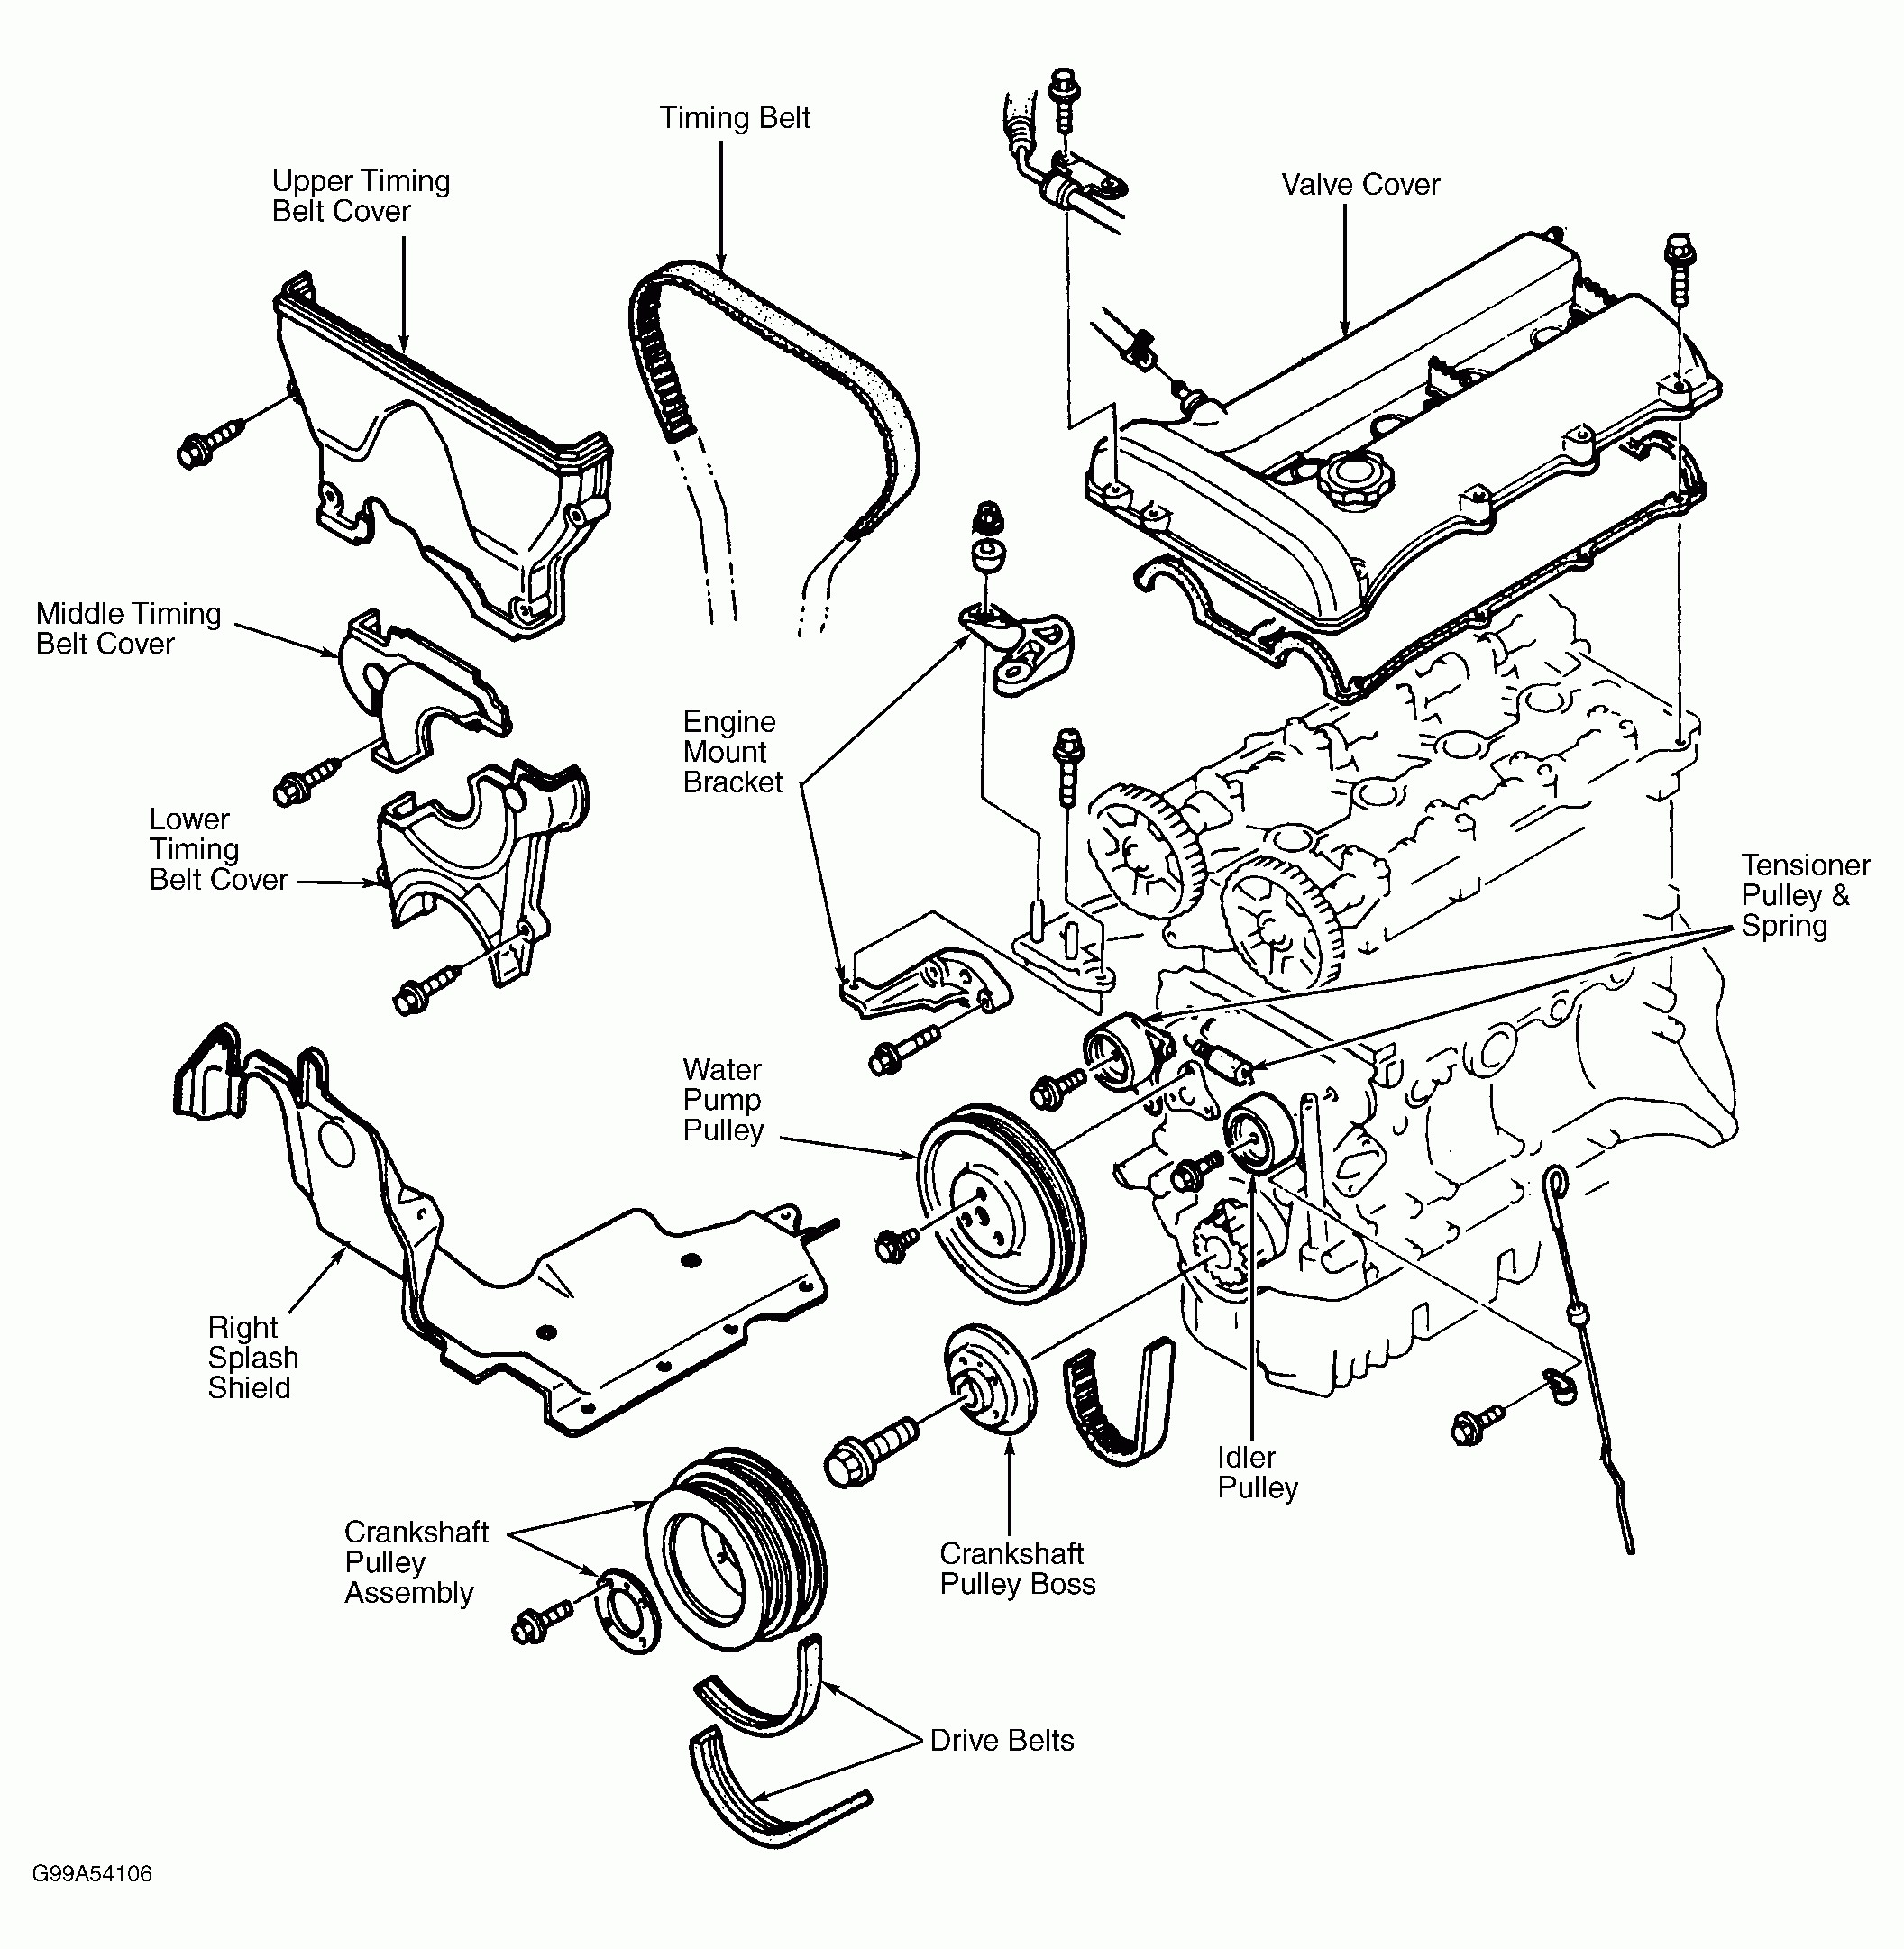 Mazda Protege 1 6 Engine Diagram Starting Know About Wiring Guitarheads Diagrams 88 323 Opinions U2022 Rh Voterid Co